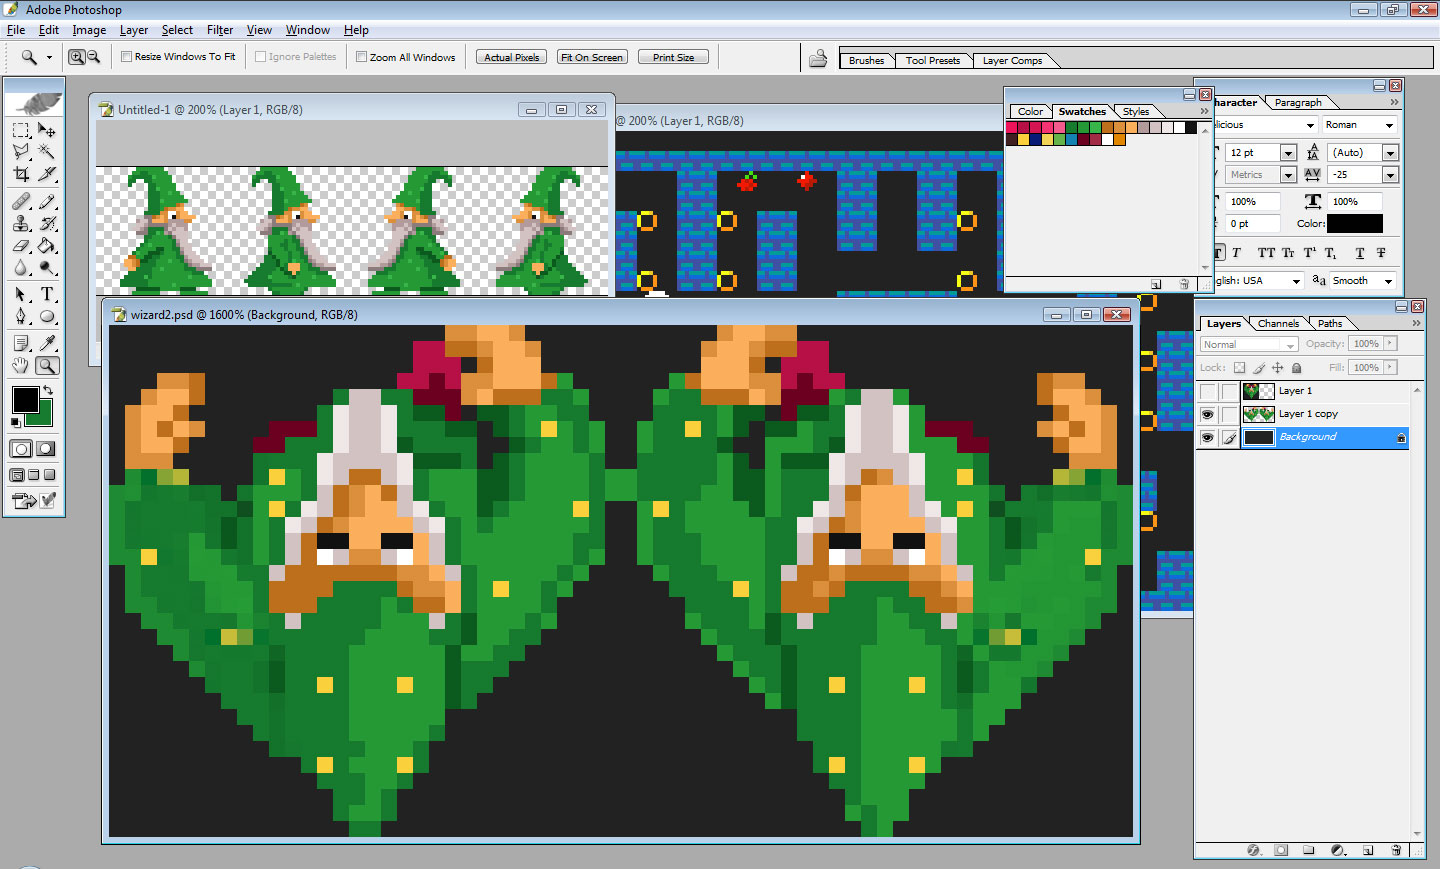 Wizard sprite animated using HTML5/Canvas and rotate() method